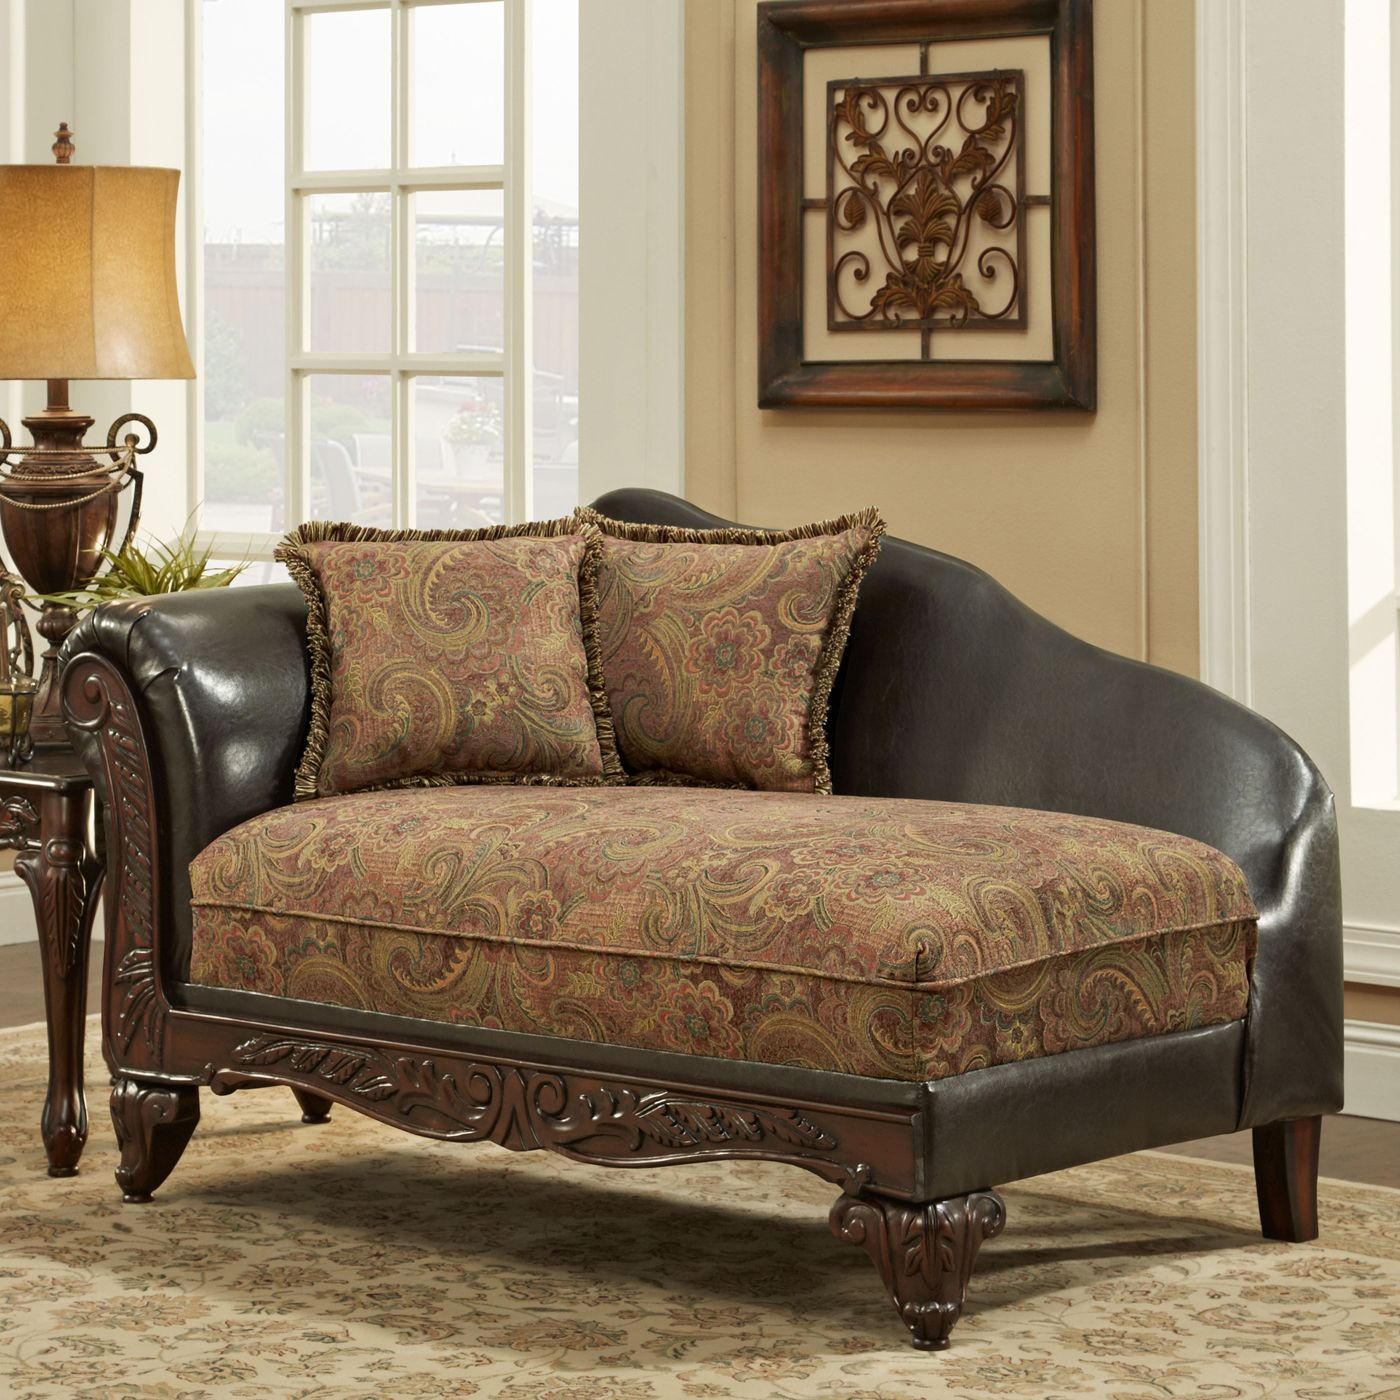 Shop Chelsea Home 726300-CH Arlene Chaise at ATG Stores ...